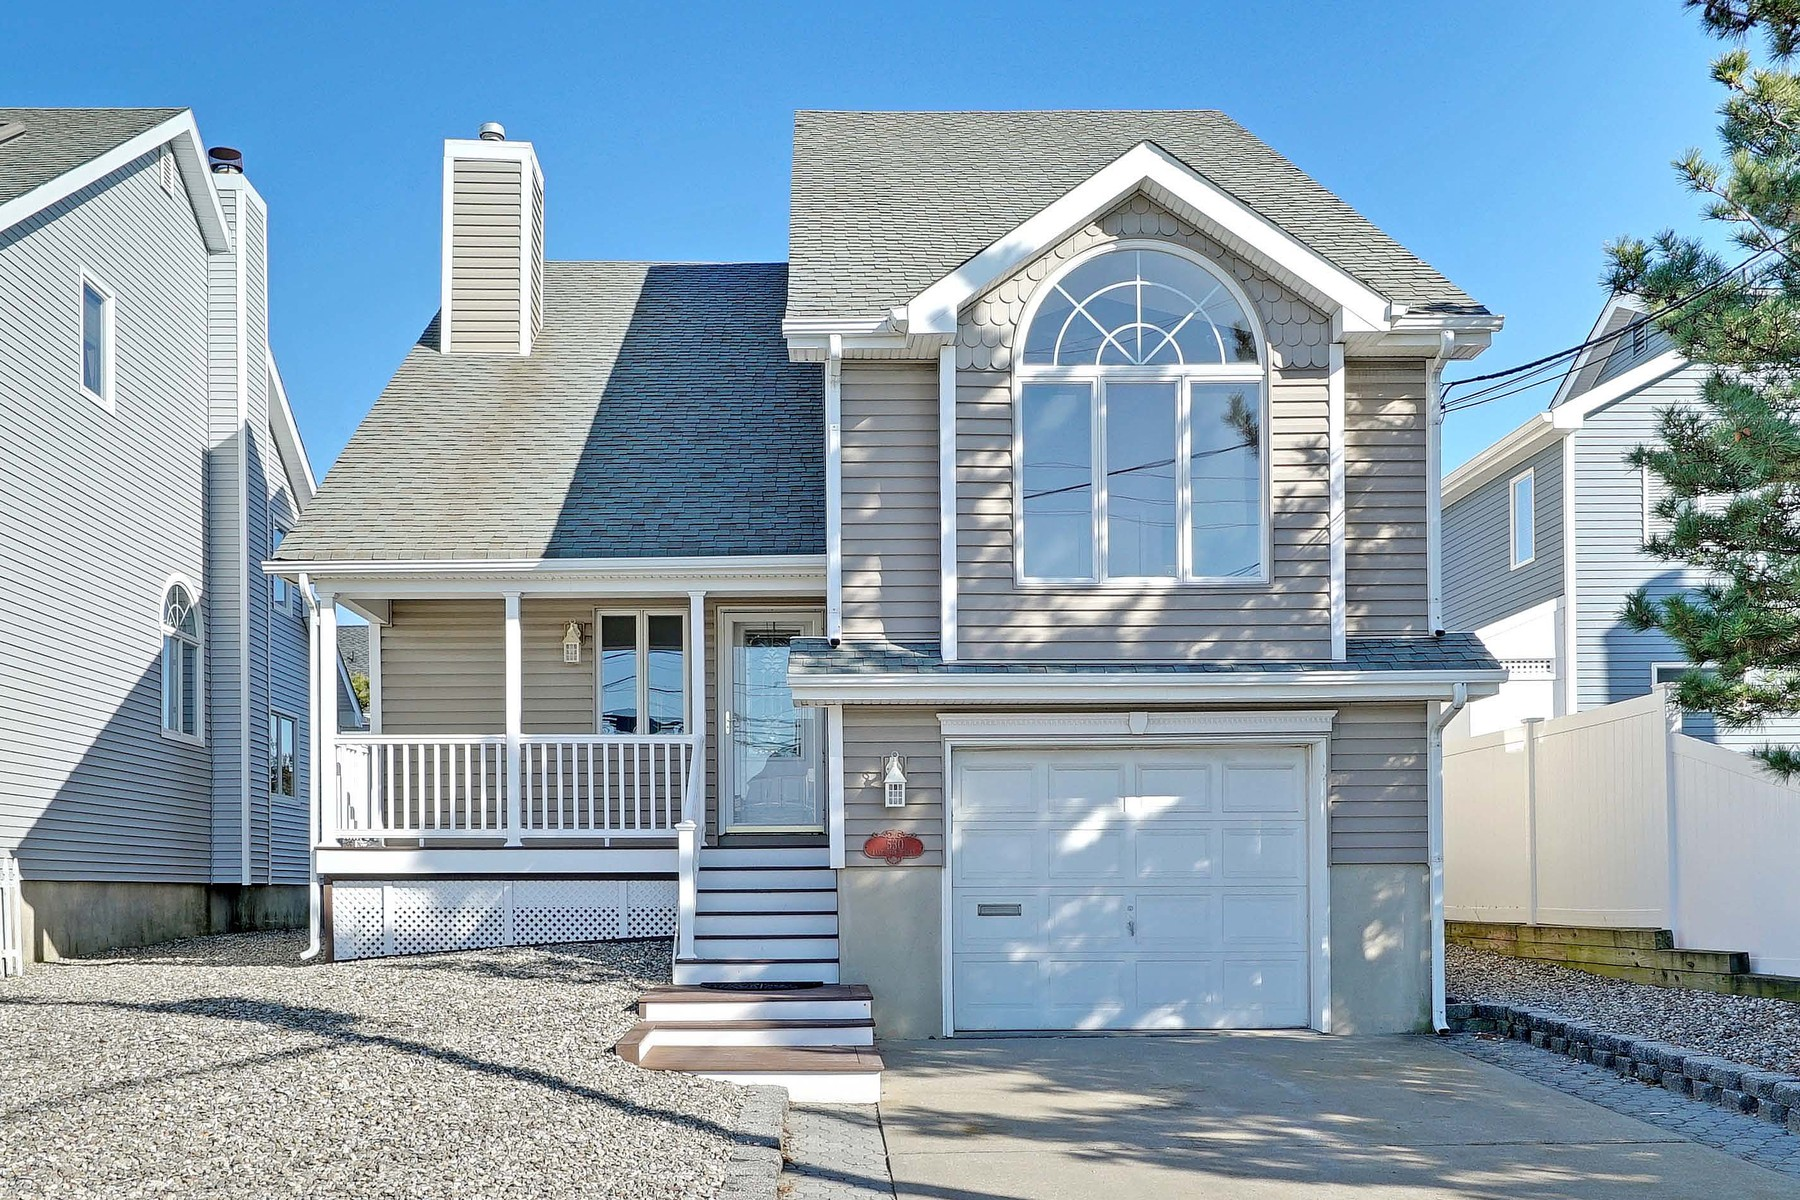 Single Family Home for Sale at Superior Location 530 E Main St Manasquan, New Jersey 08736 United States